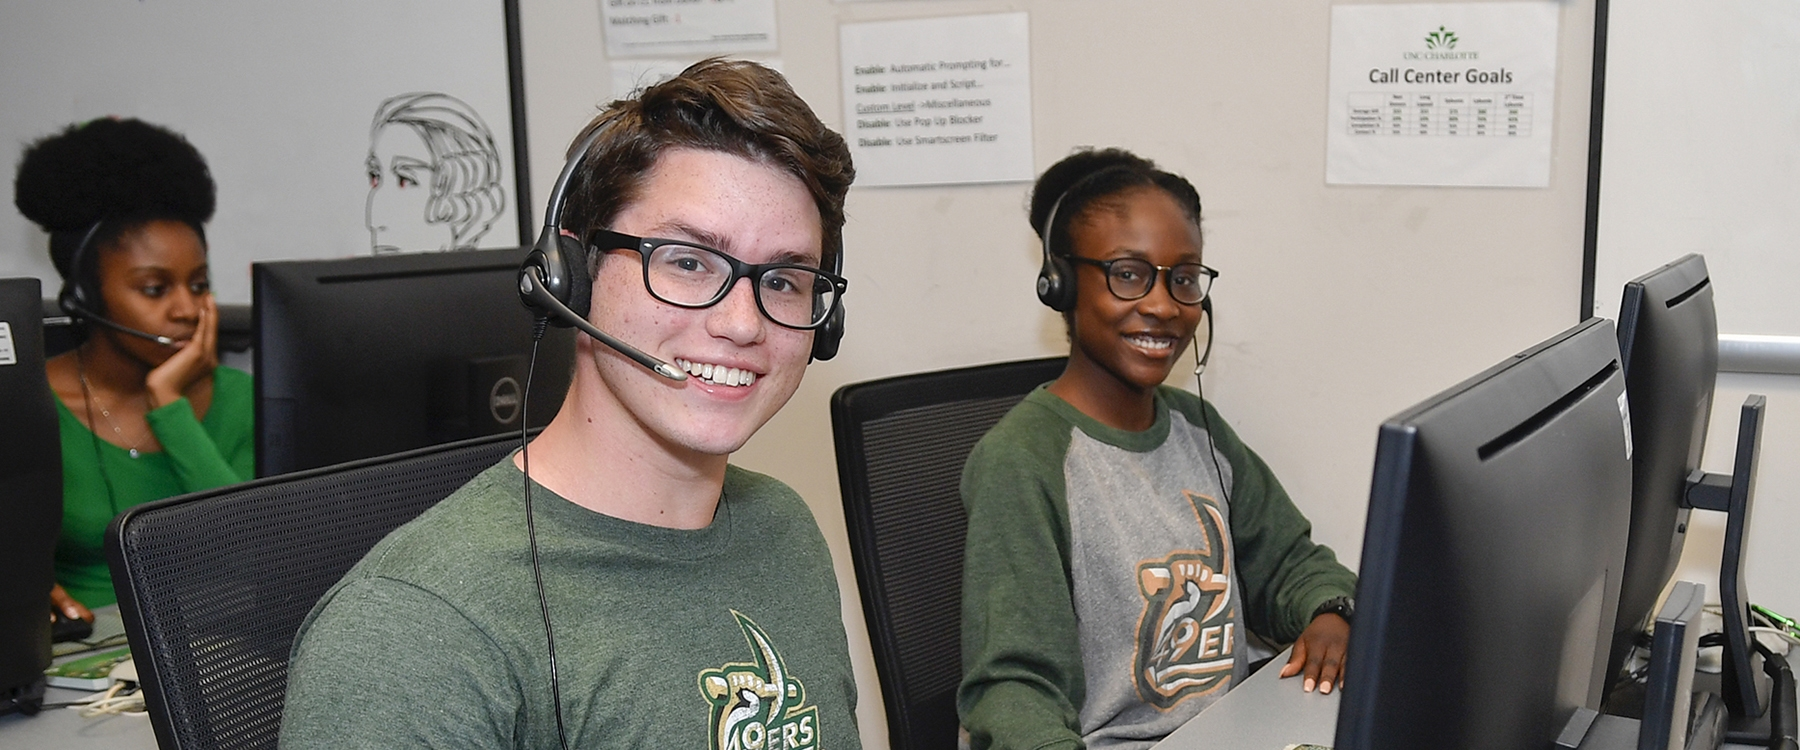 Annual Giving call center